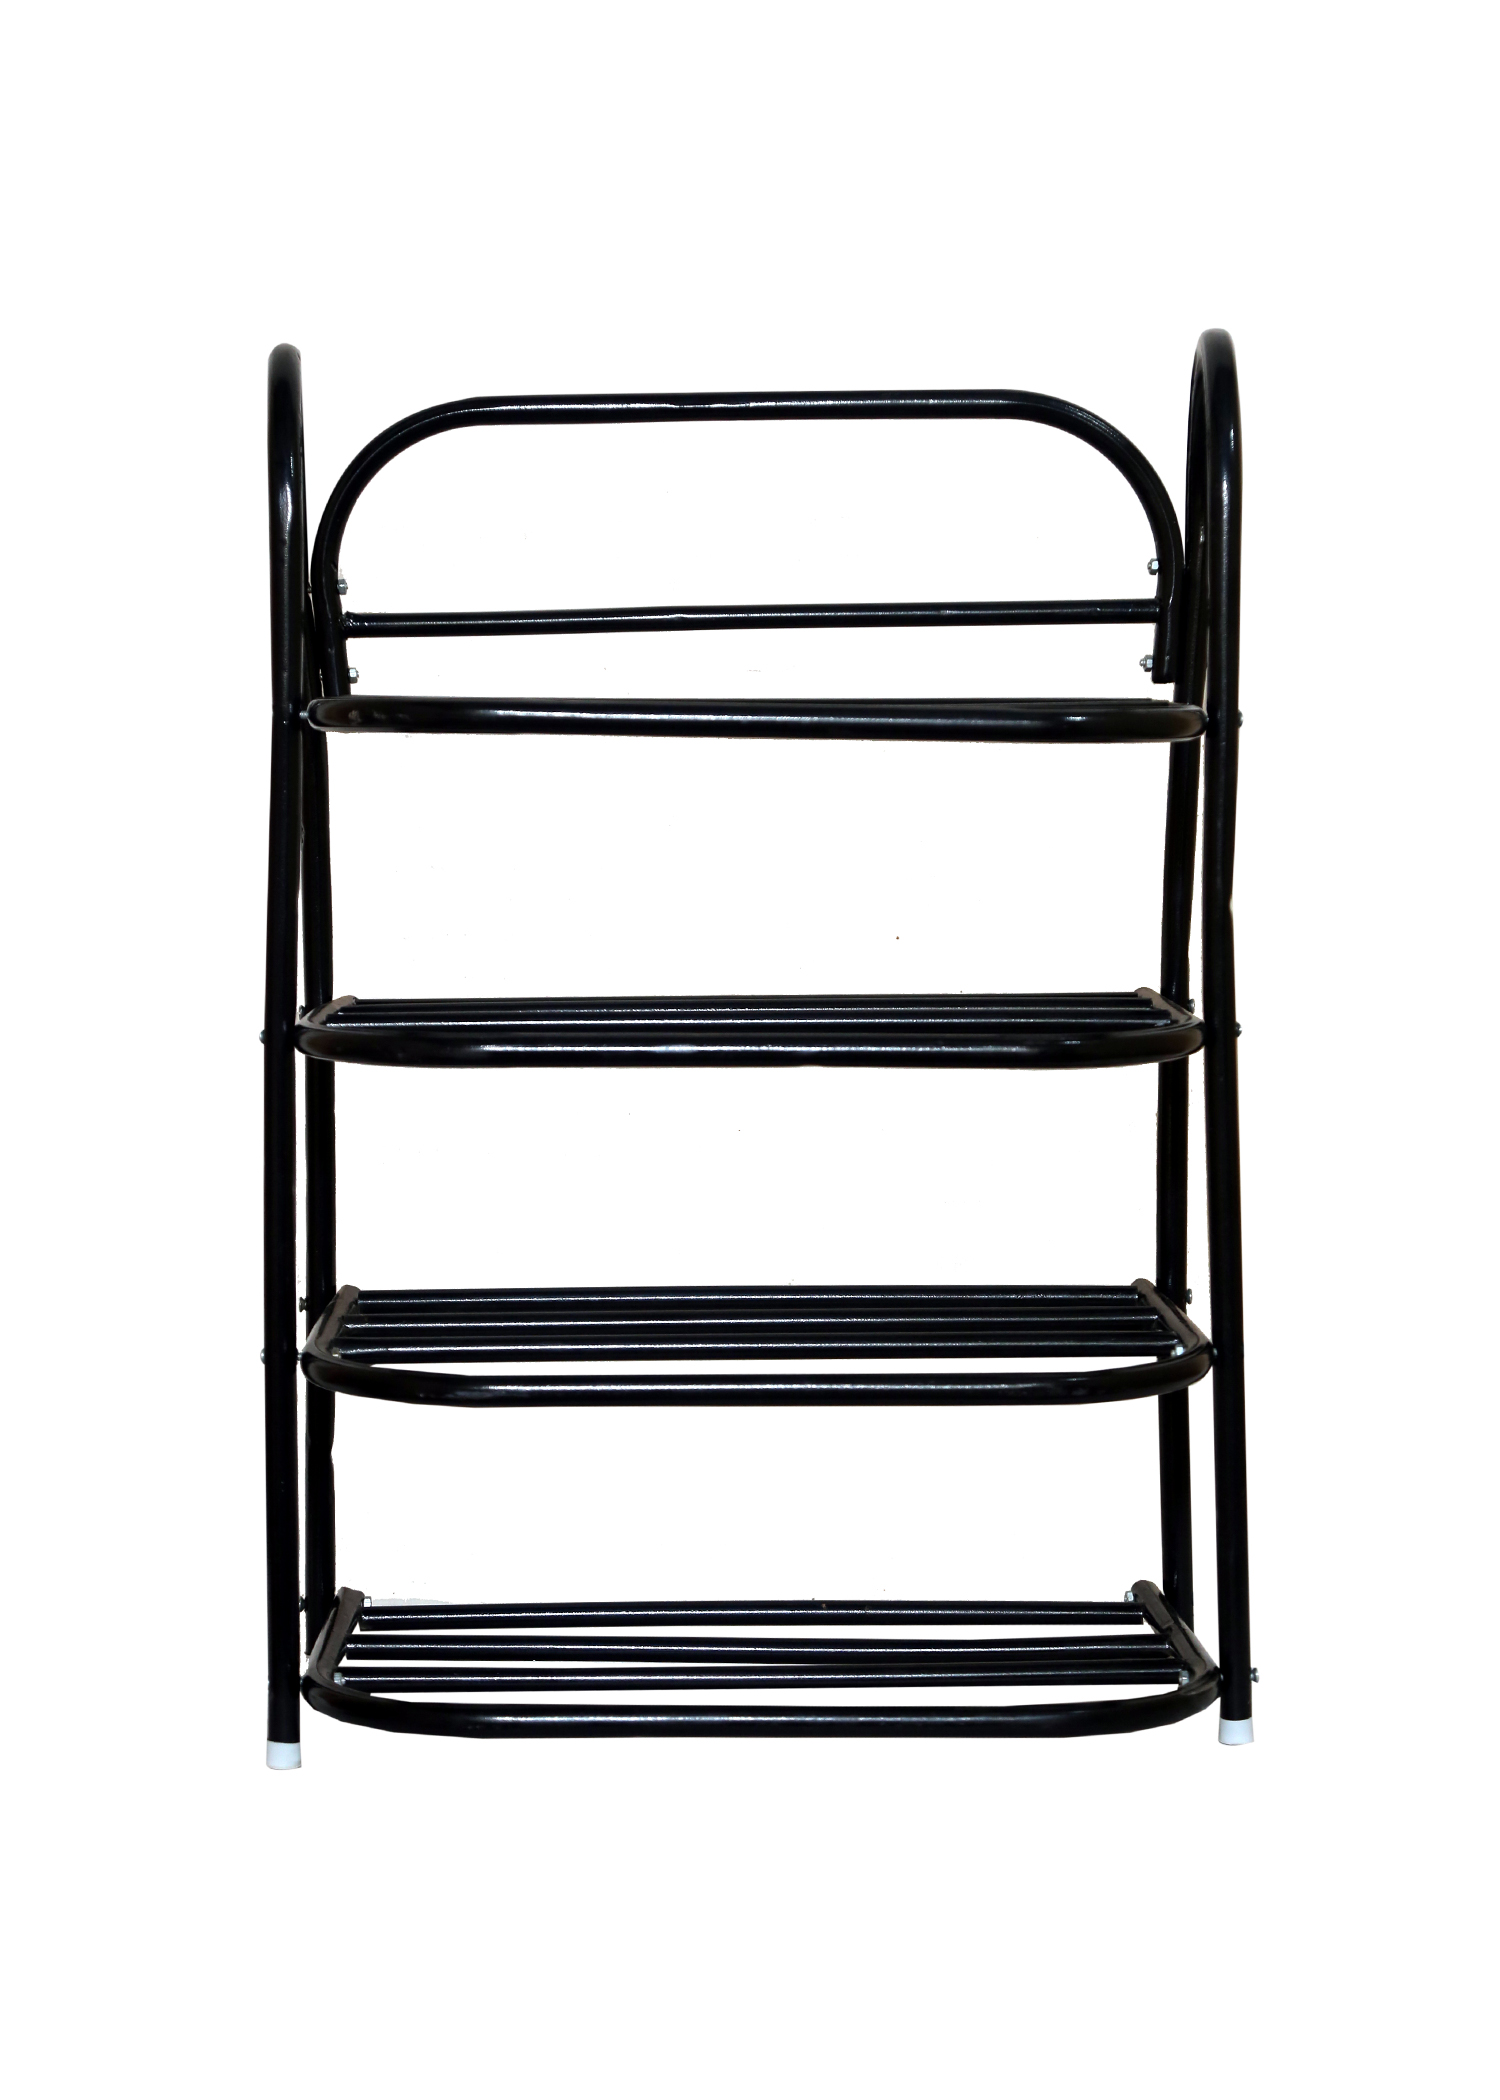 ANR STORE 4 LAYER STEEL SHOE RACK